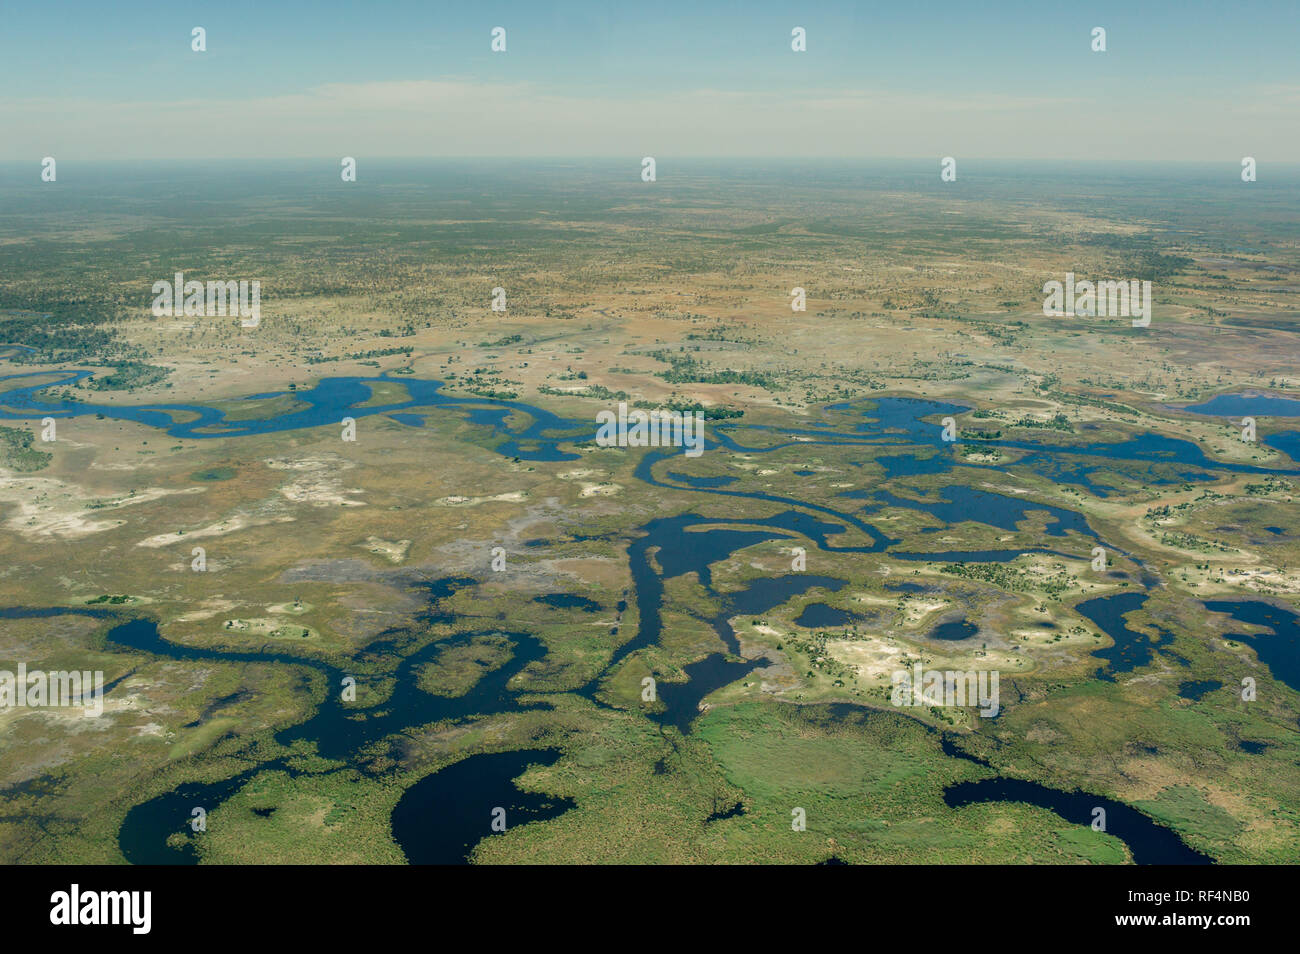 The Okavango Delta in Botswana is a famous and dynamic ecostem where the water levels in the swamps change dramatically over the course of the seasons - Stock Image